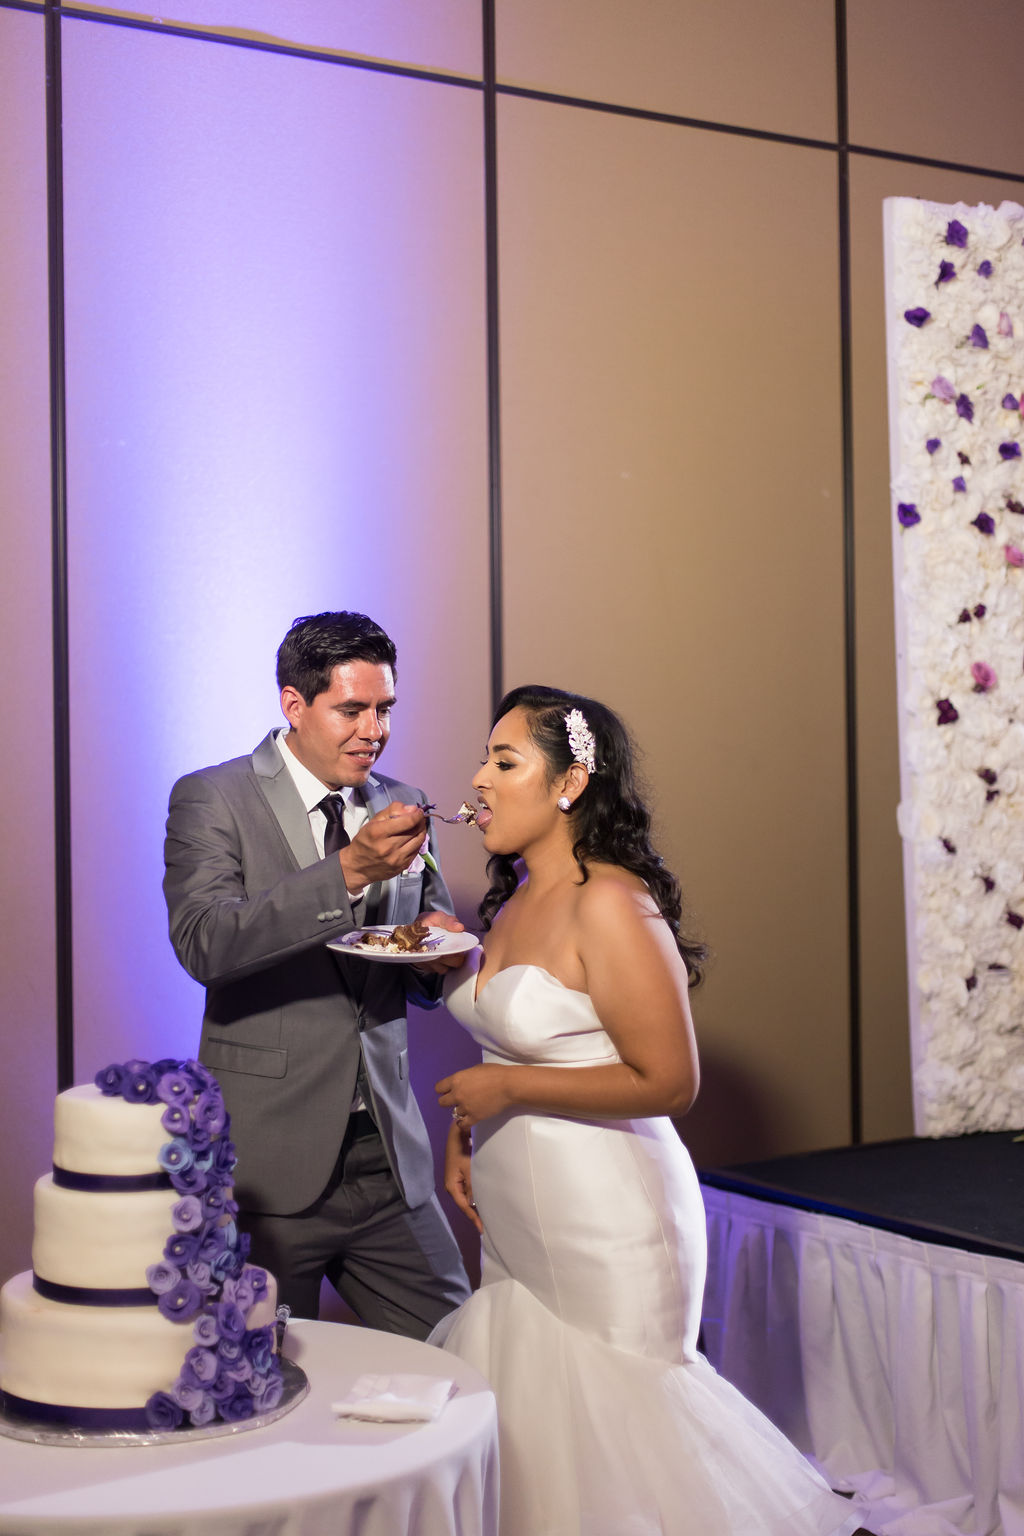 SheratonHotelPomonaWedding-Mabel&Omar(305of390).jpg